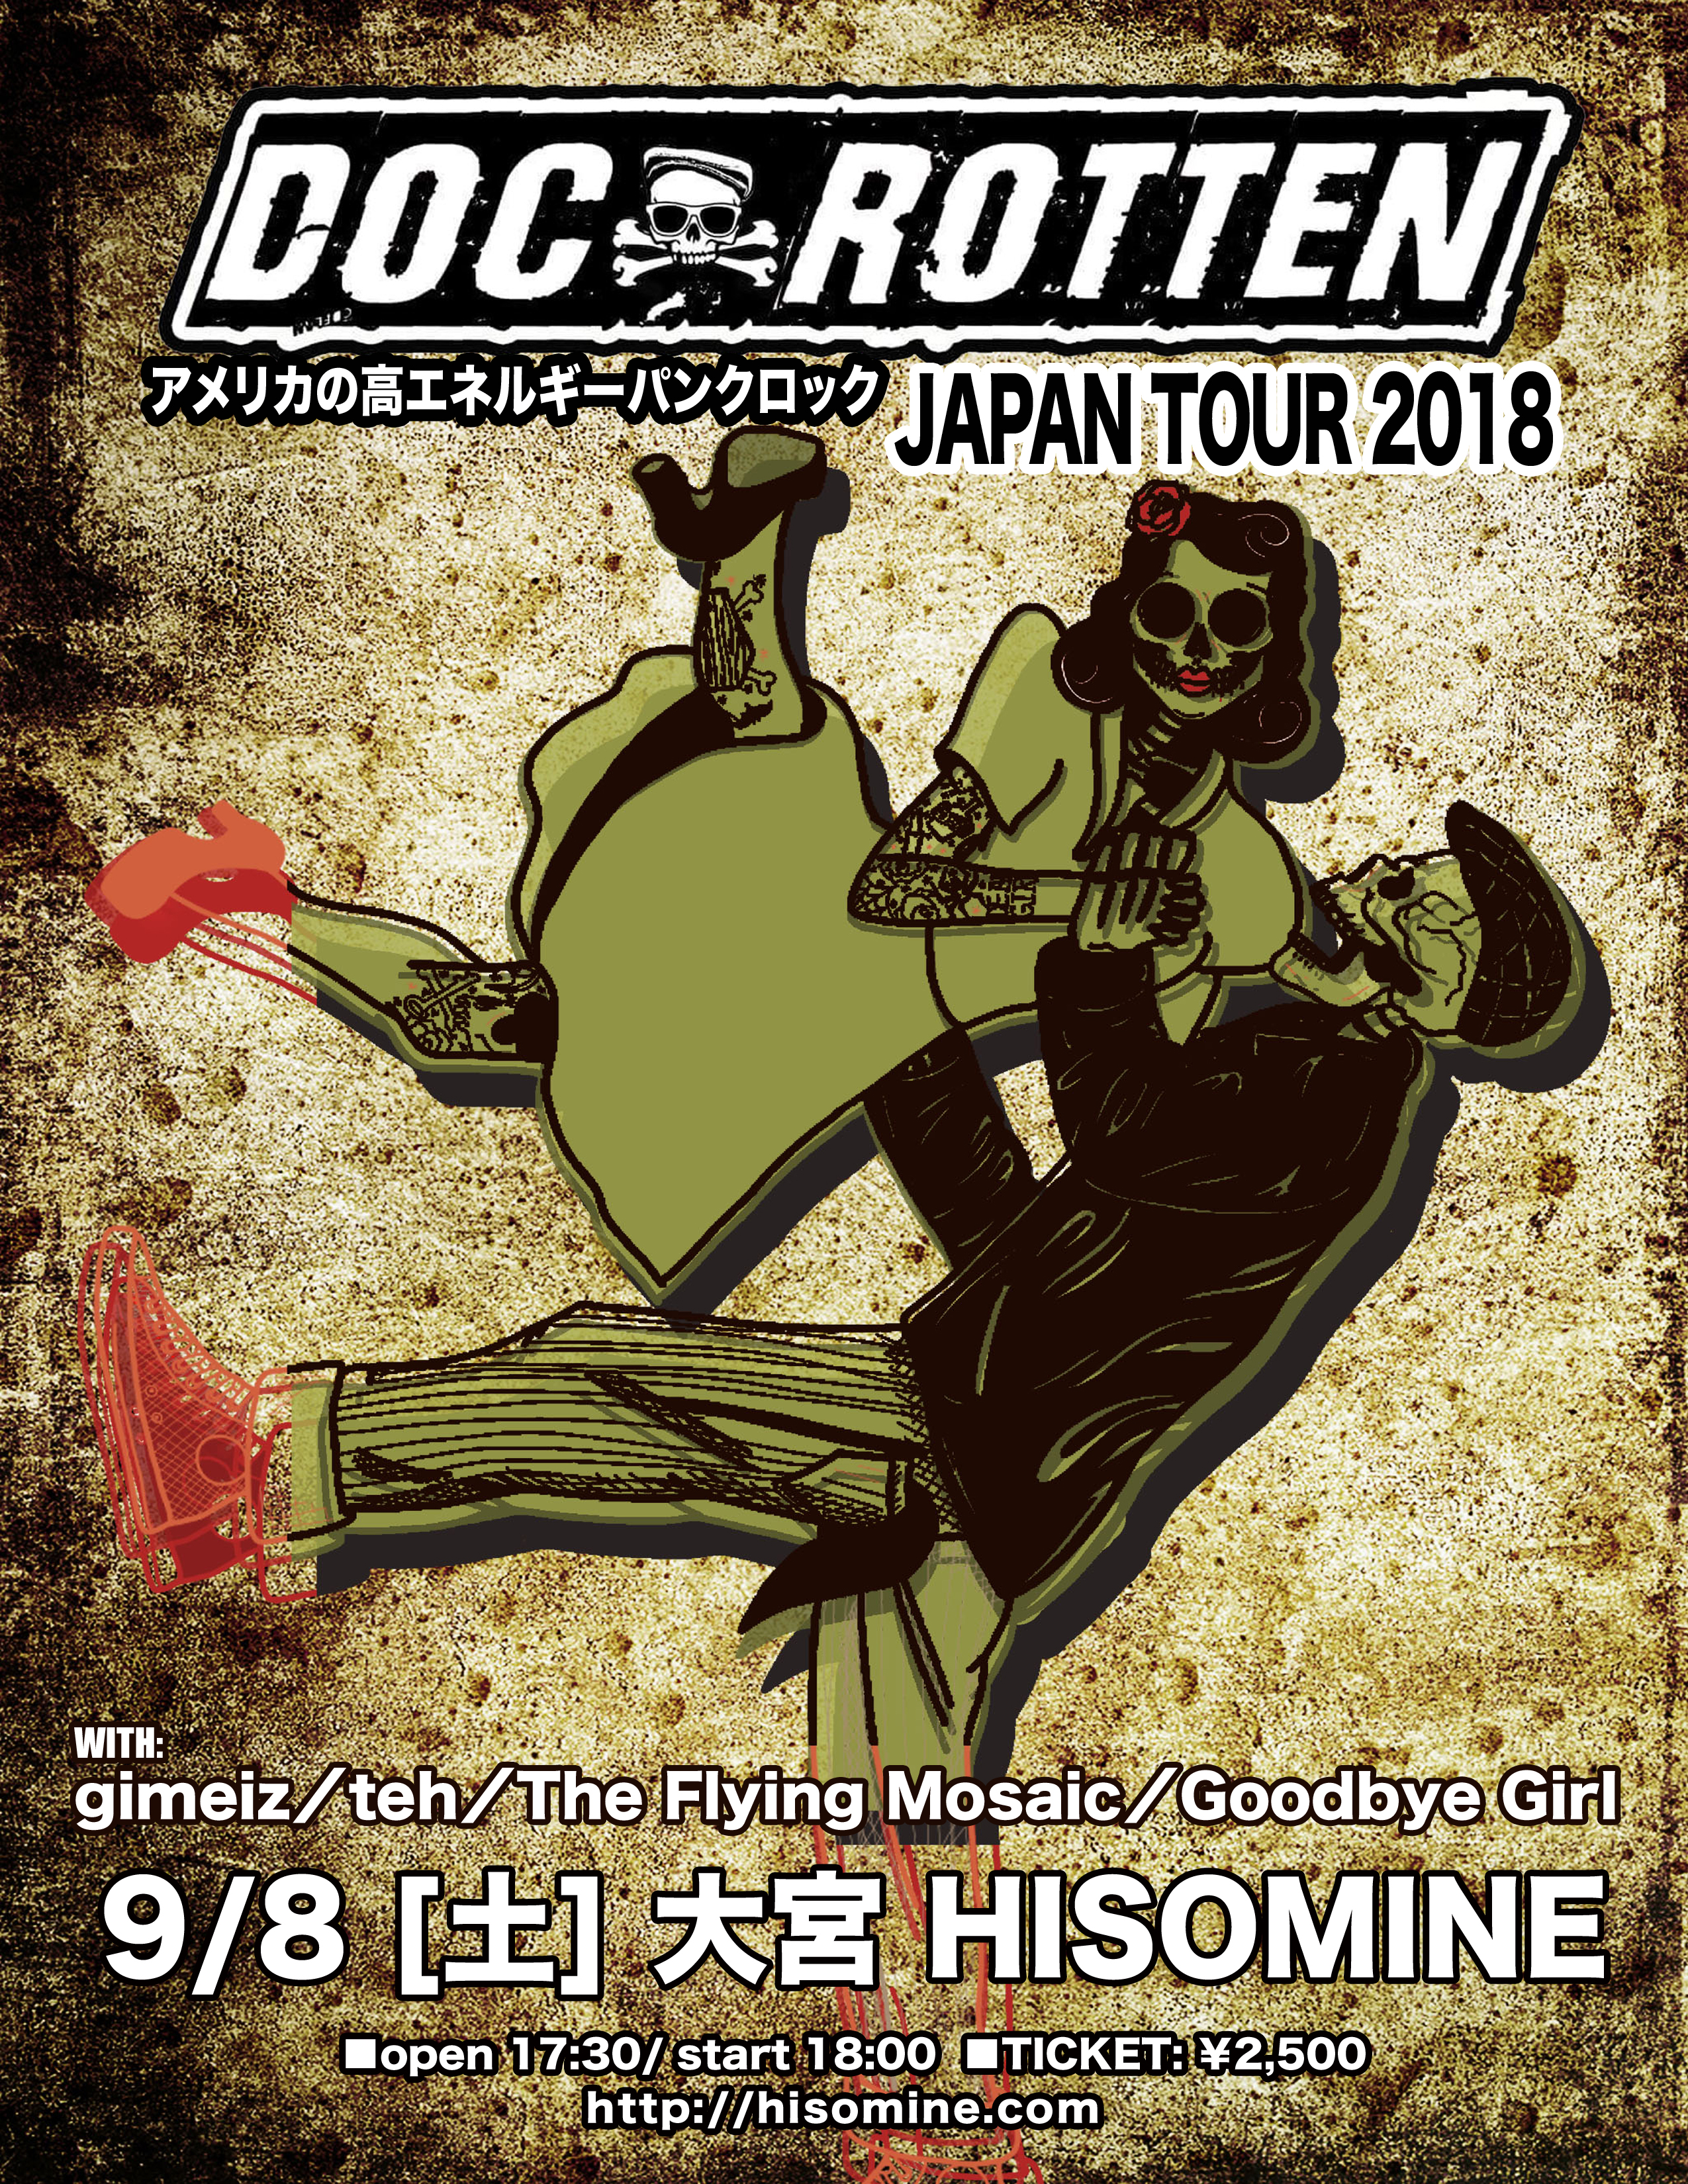 DOC ROTTEN Japan Tour in hisomine